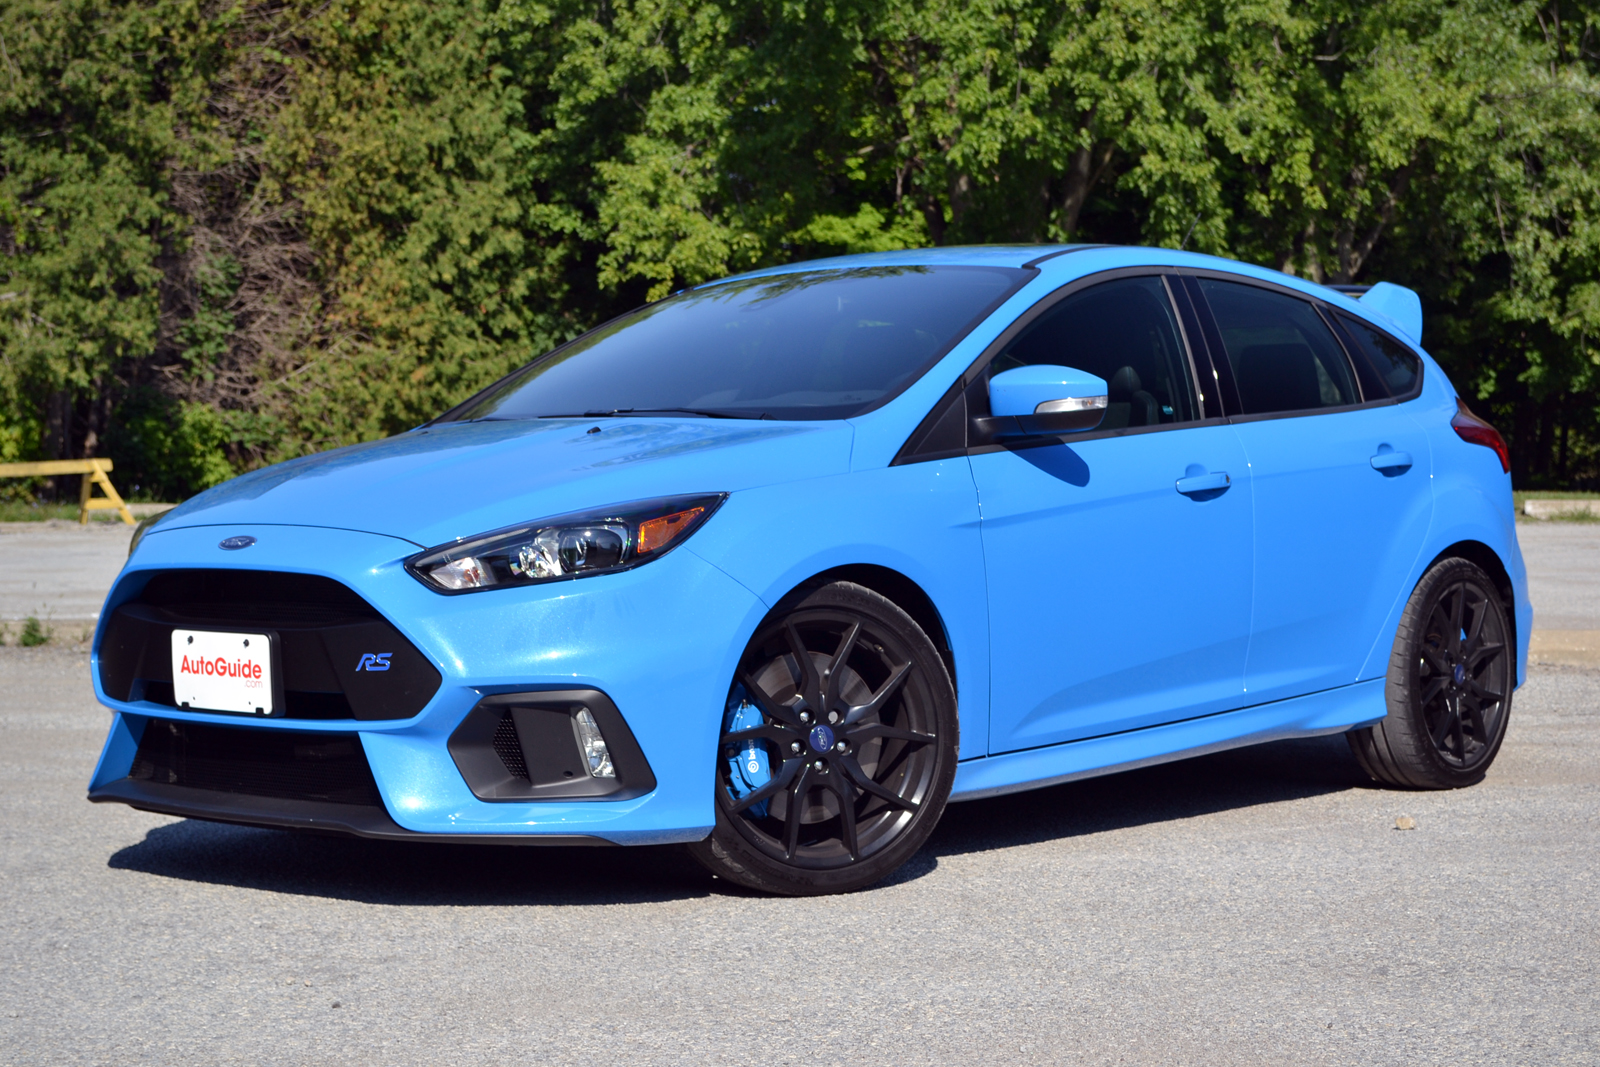 Ford Fiesta Sedan >> 2017 Ford Focus RS Review - AutoGuide.com